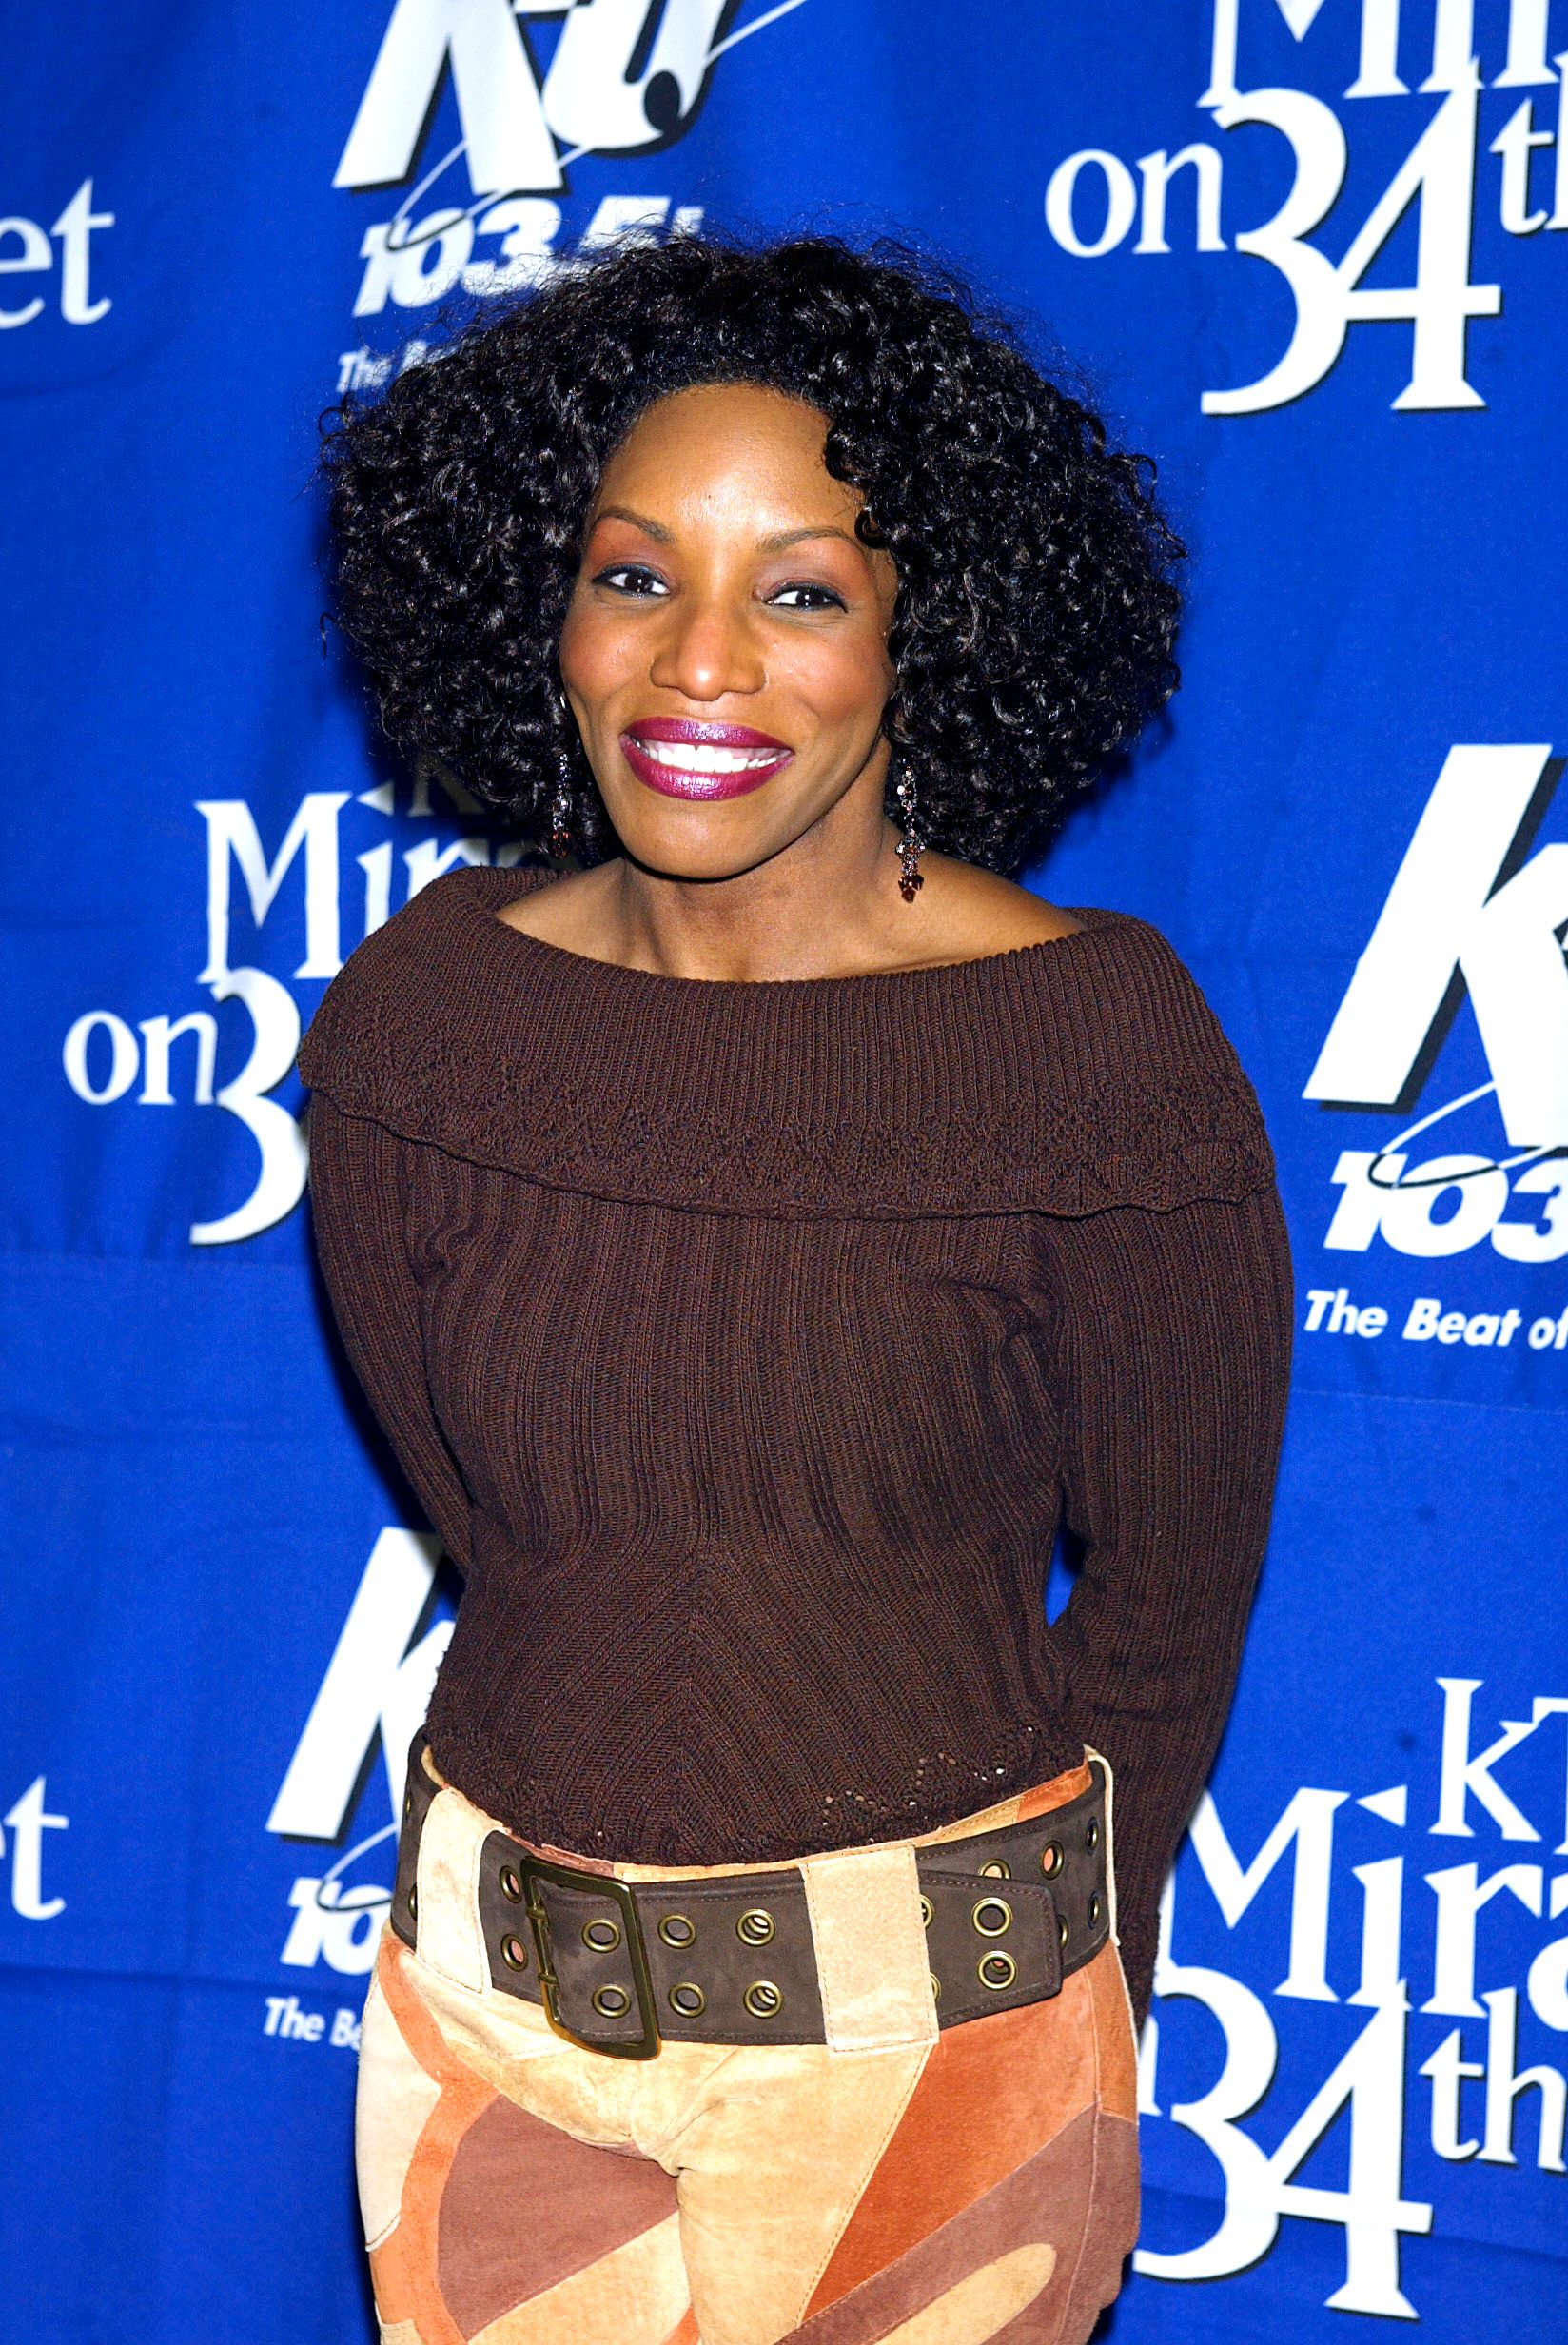 """Stephanie Mills at """"KTU's Miracle on 34th Street"""" hoilday concert at Madison Square Garden in New York City on December 18, 2002 